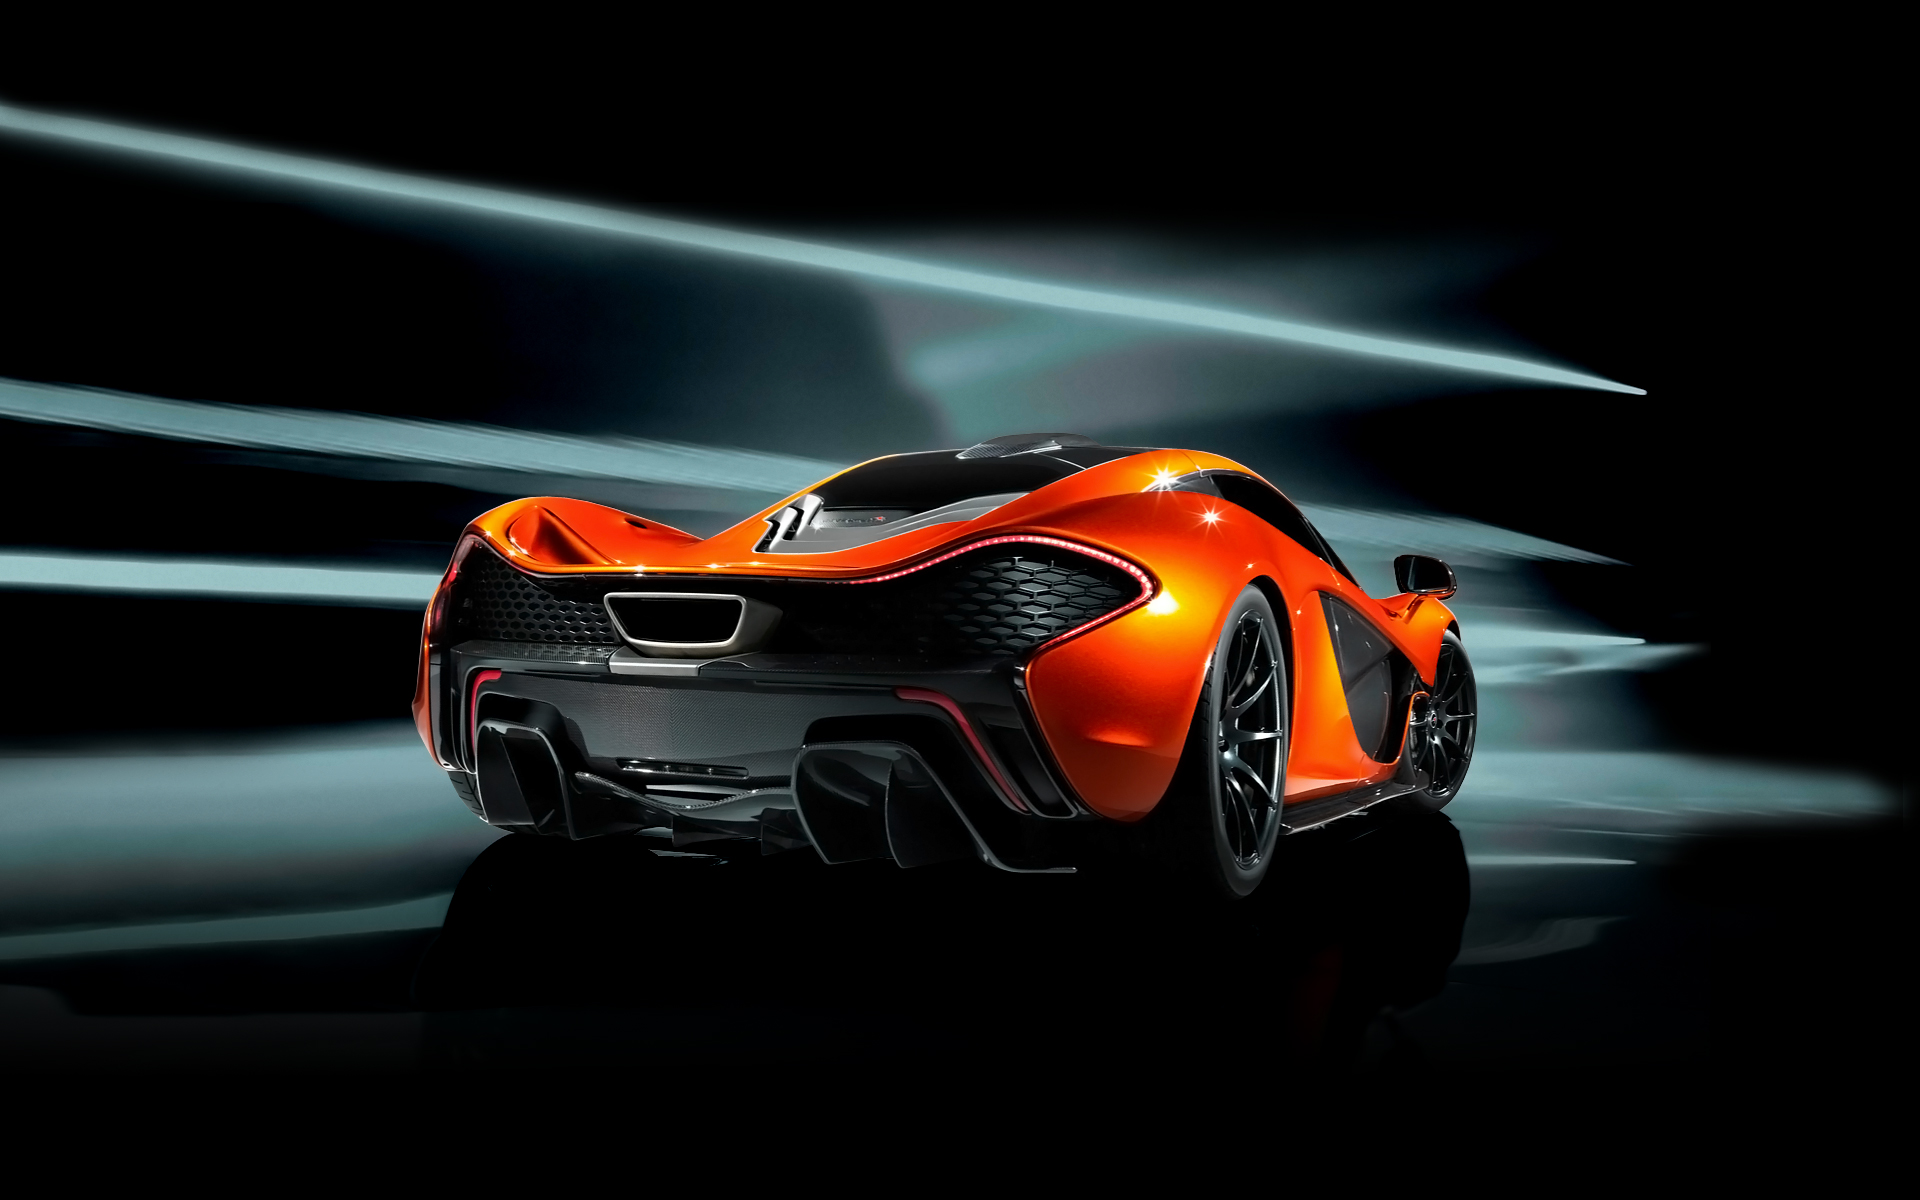 daily wallpaper: exclusive: the all new mclaren p1 | i like to waste